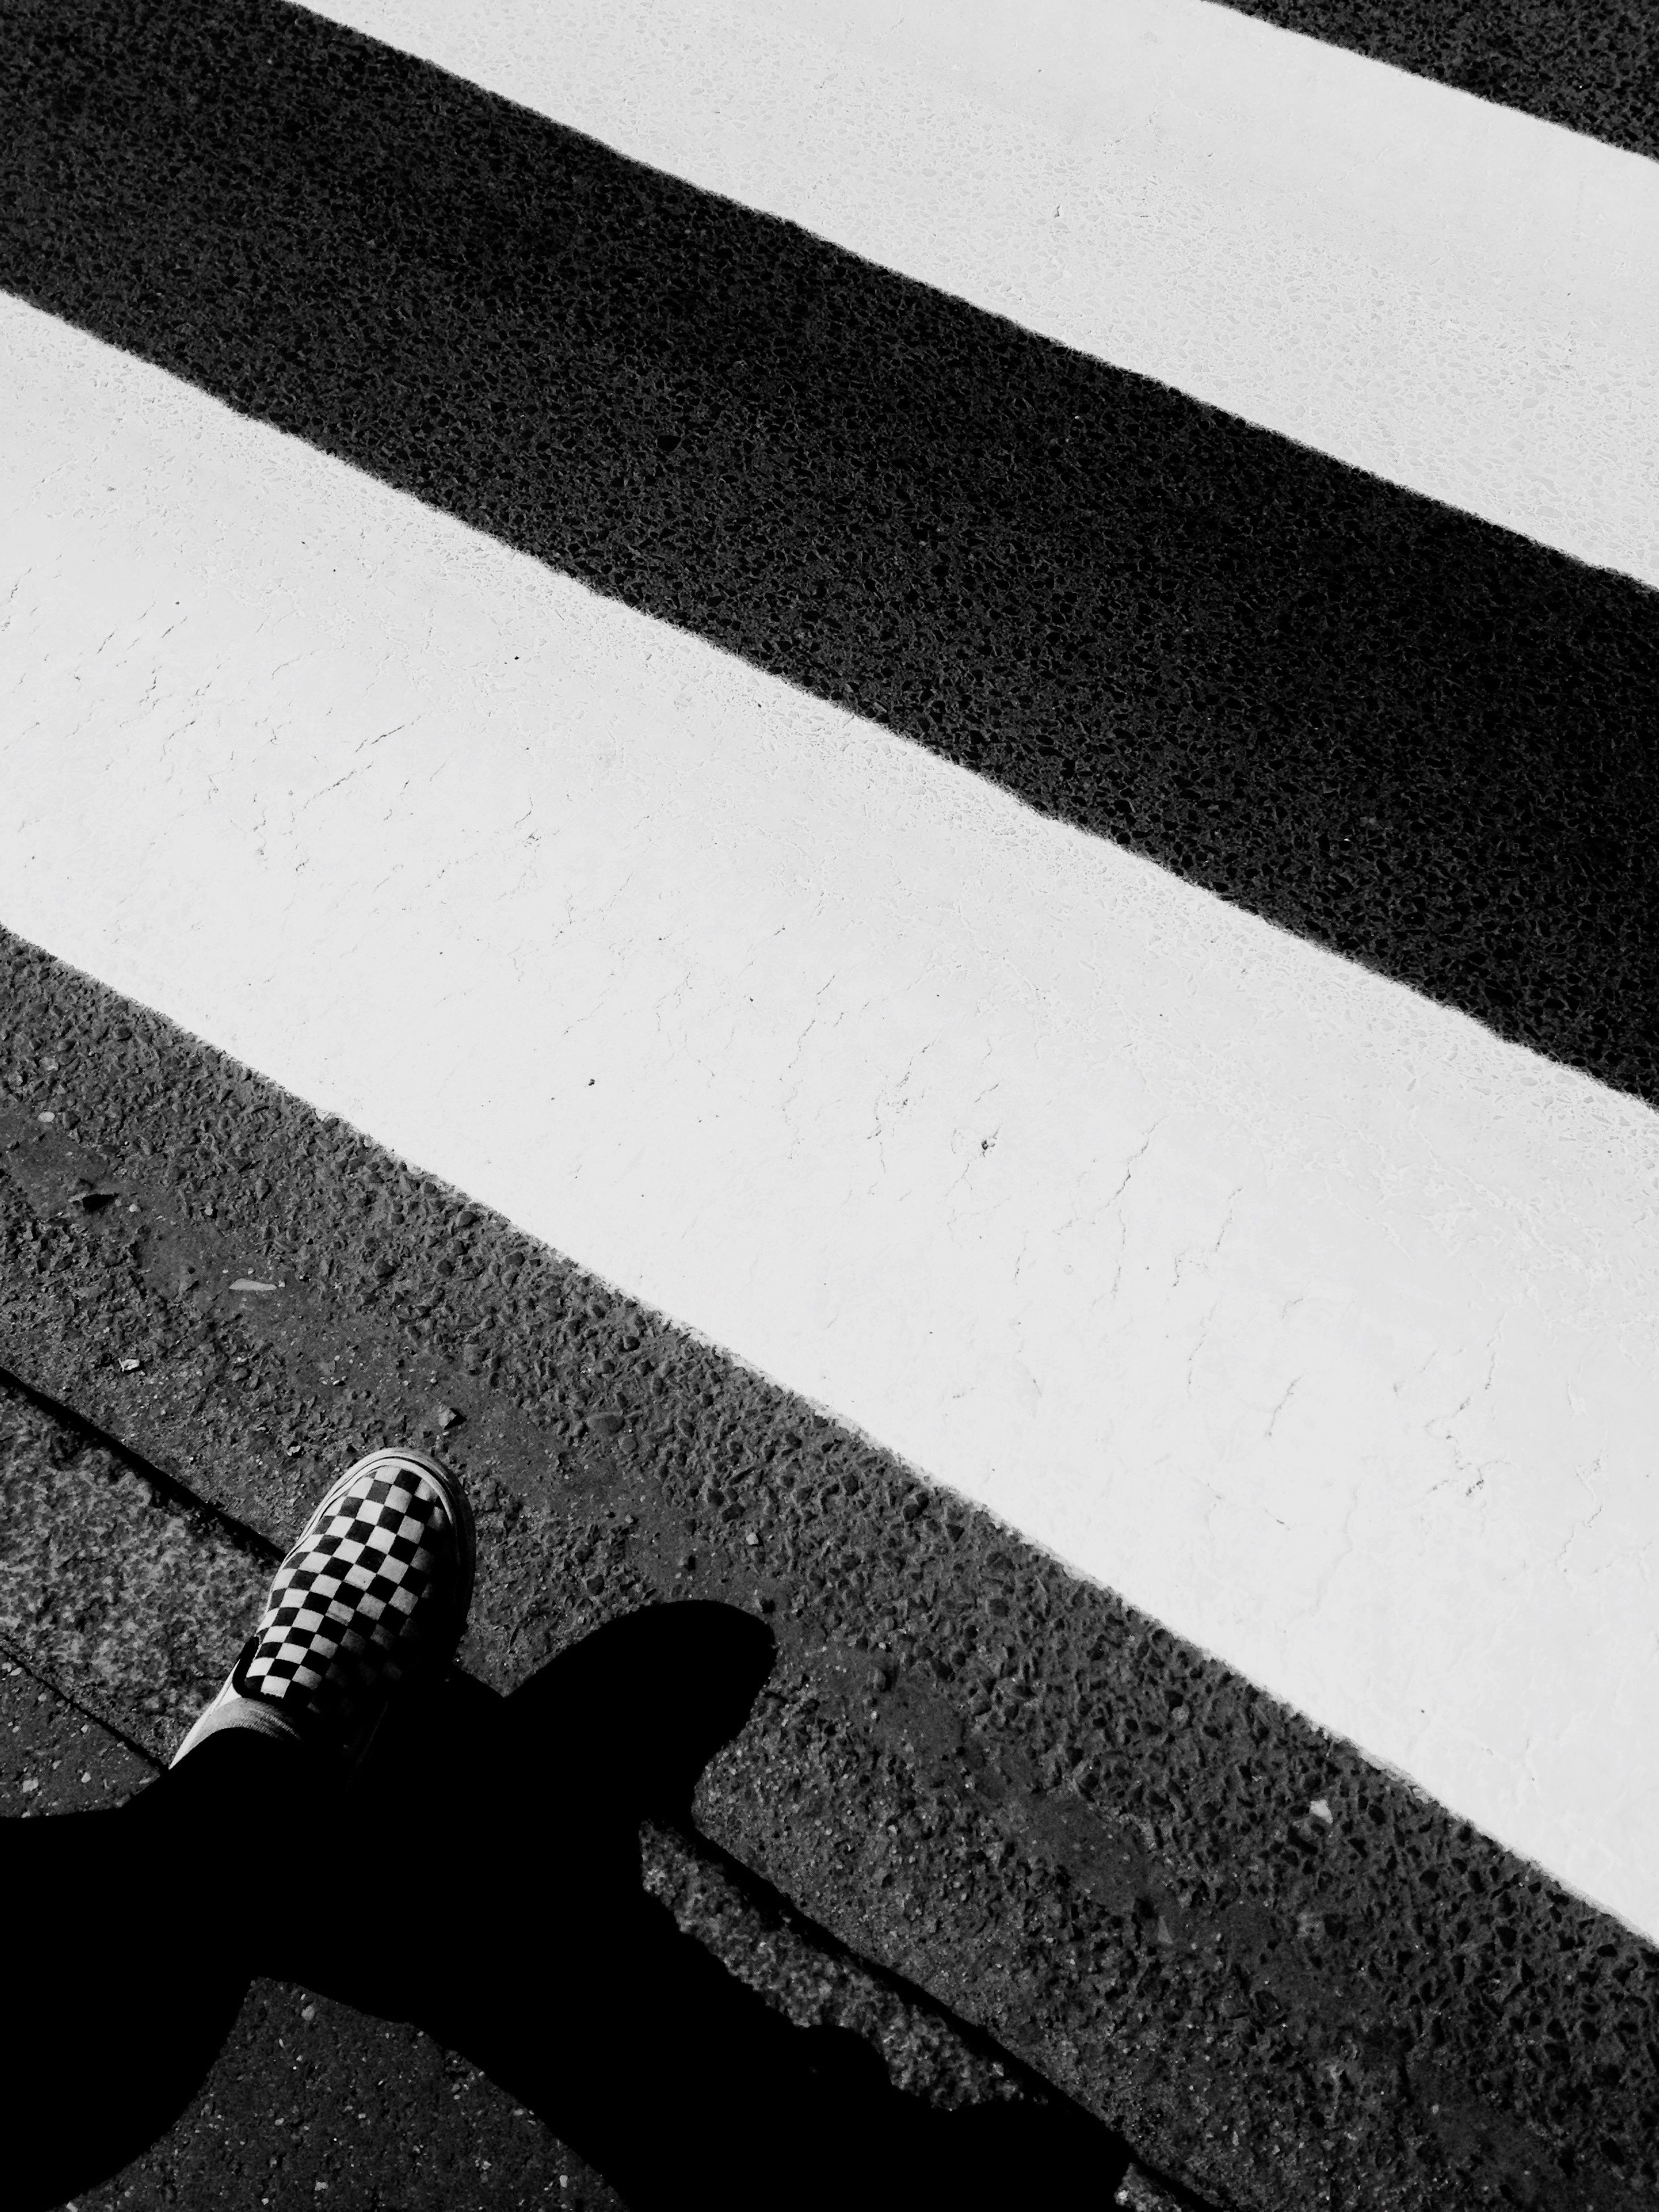 low section, person, high angle view, street, personal perspective, lifestyles, shadow, unrecognizable person, sunlight, men, road, leisure activity, part of, shoe, road marking, human foot, day